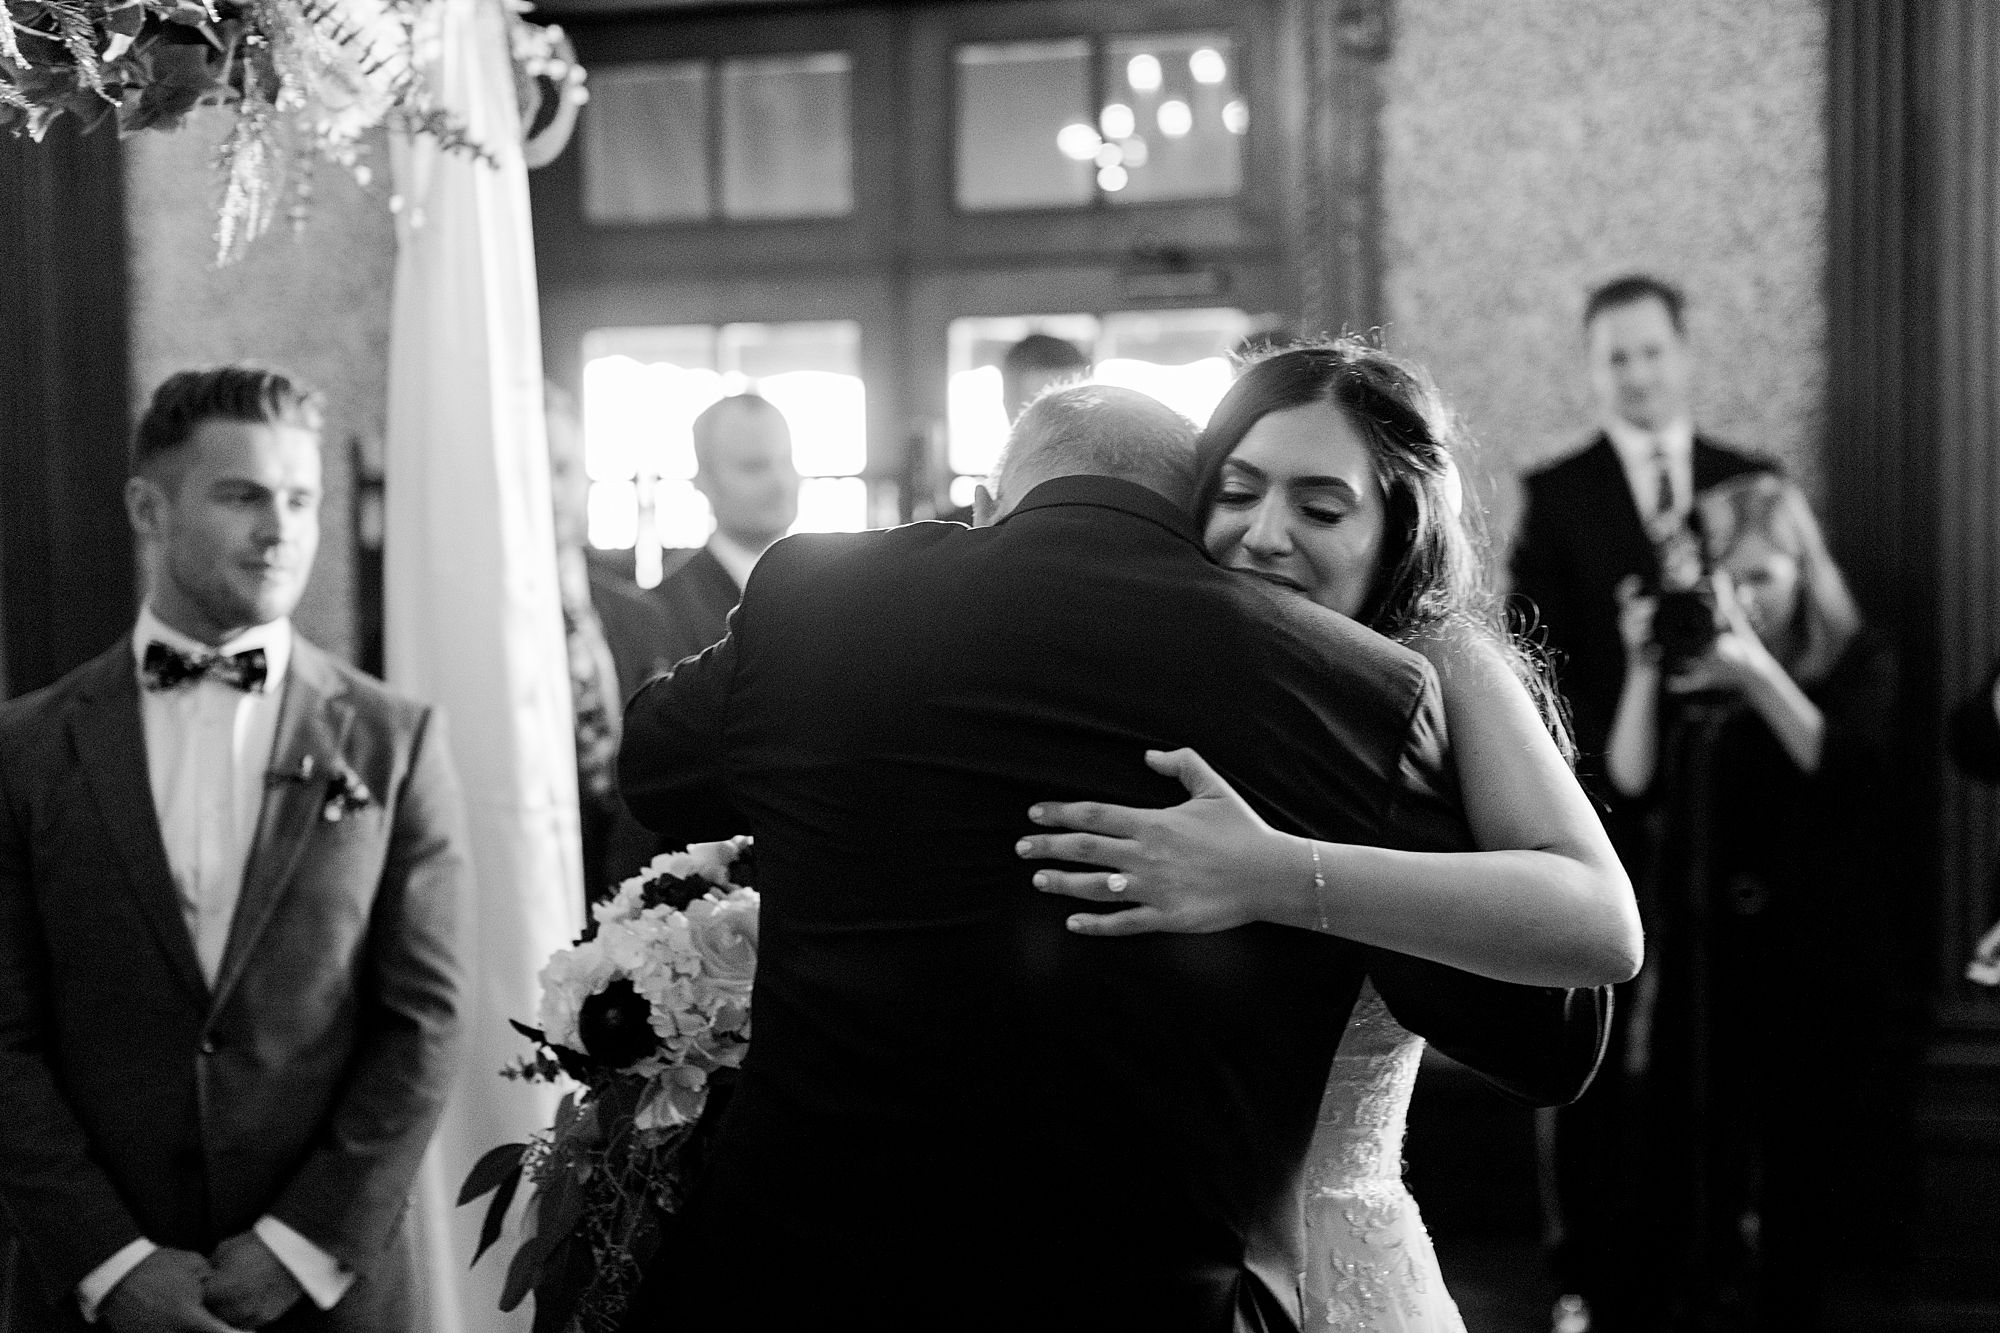 University Club Wedding in San Francisco - Cortney and Jon - San Francisco Wedding - Ashley Baumgartner - SF Wedding Photographer_0094.jpg